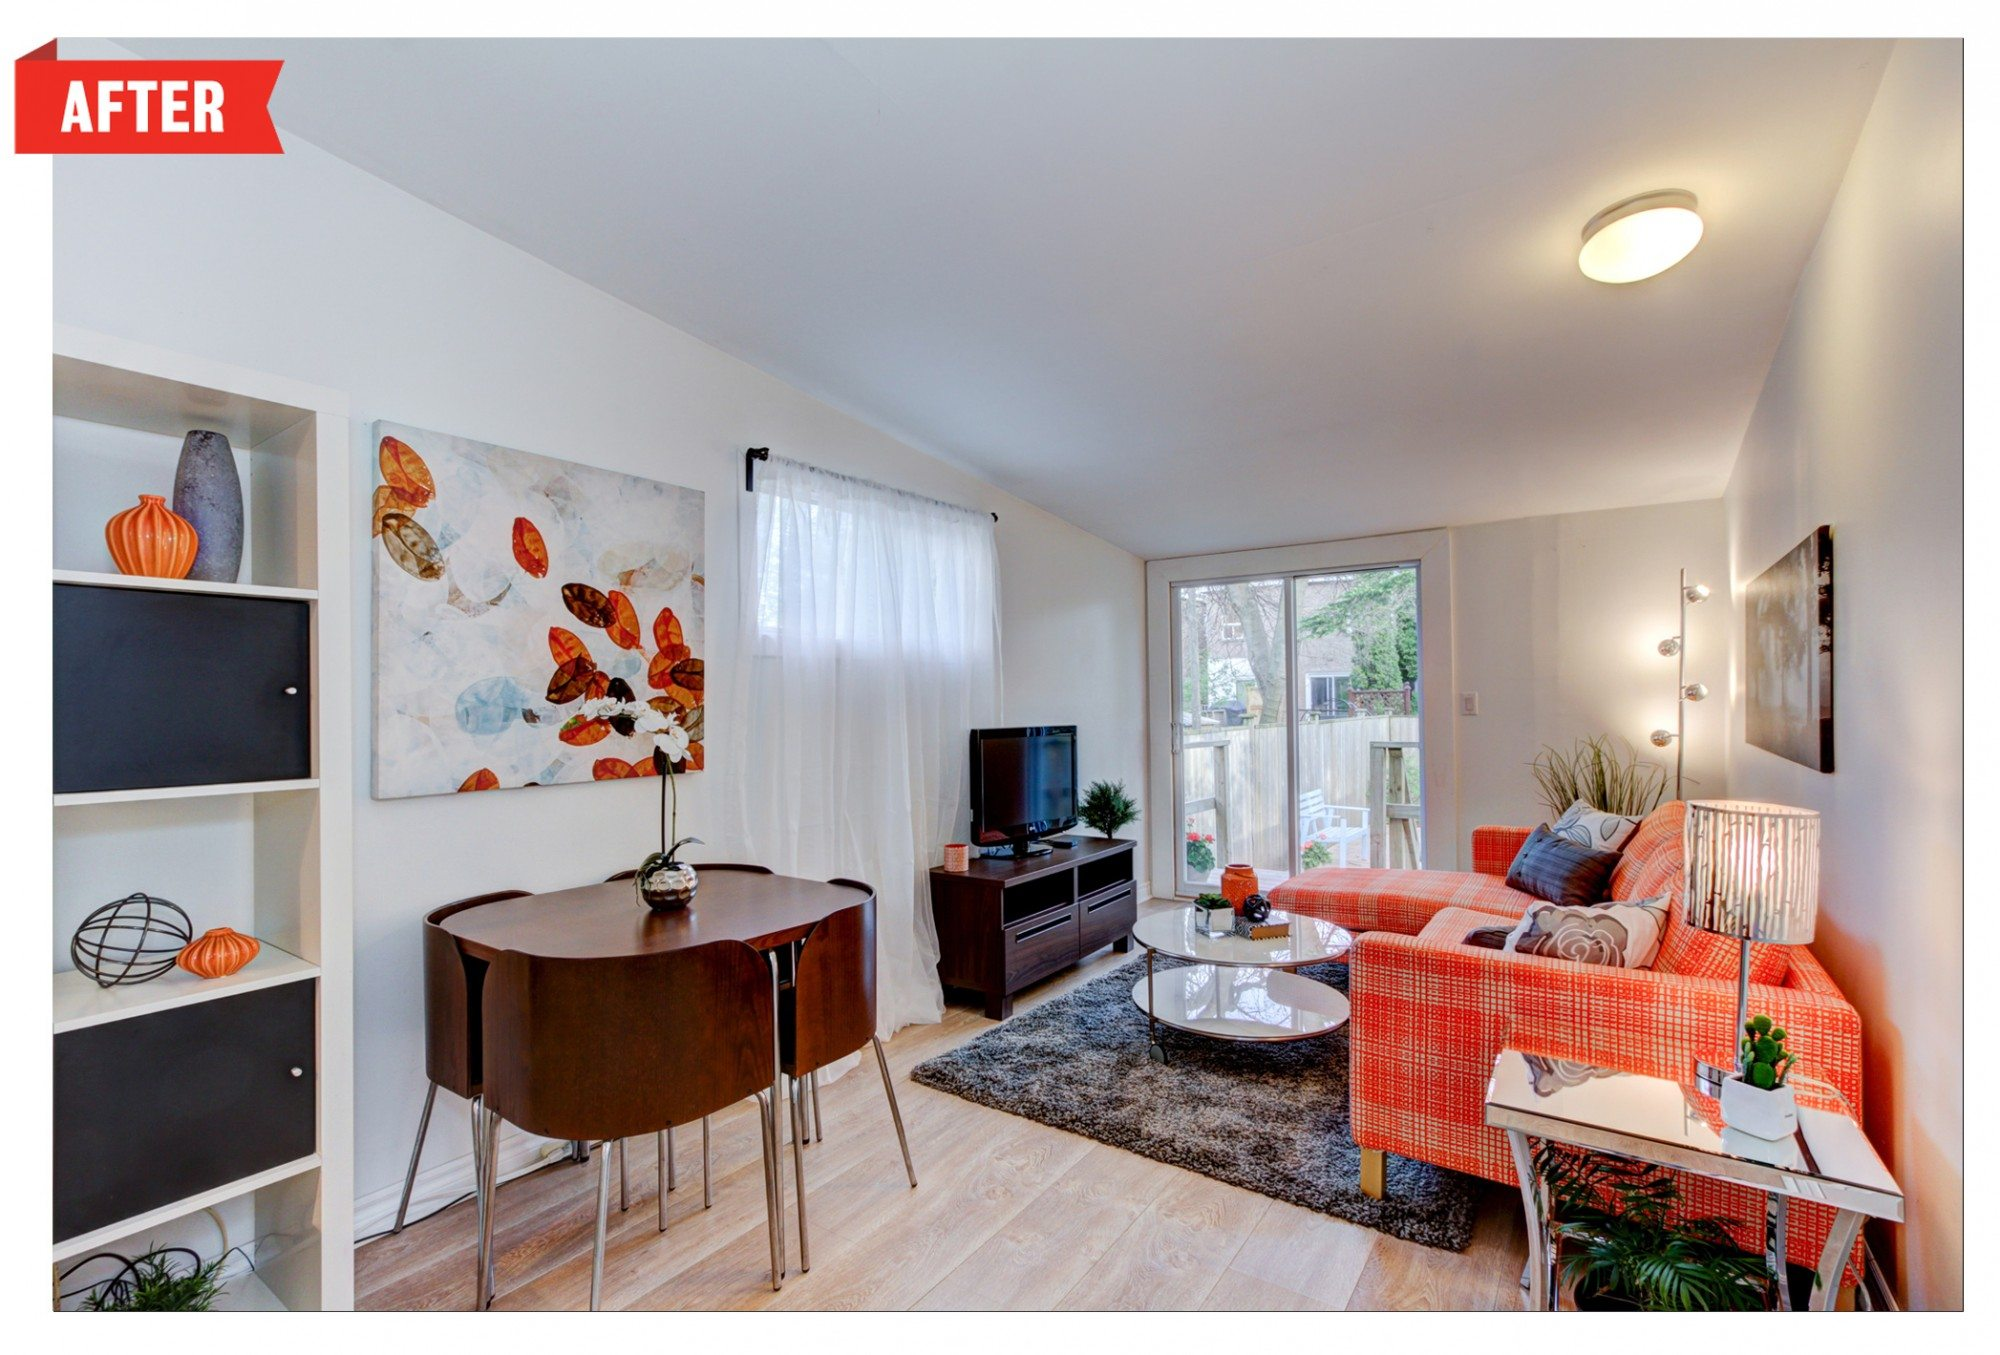 toronto-house-staging-1959-dundas-street-east-living-after